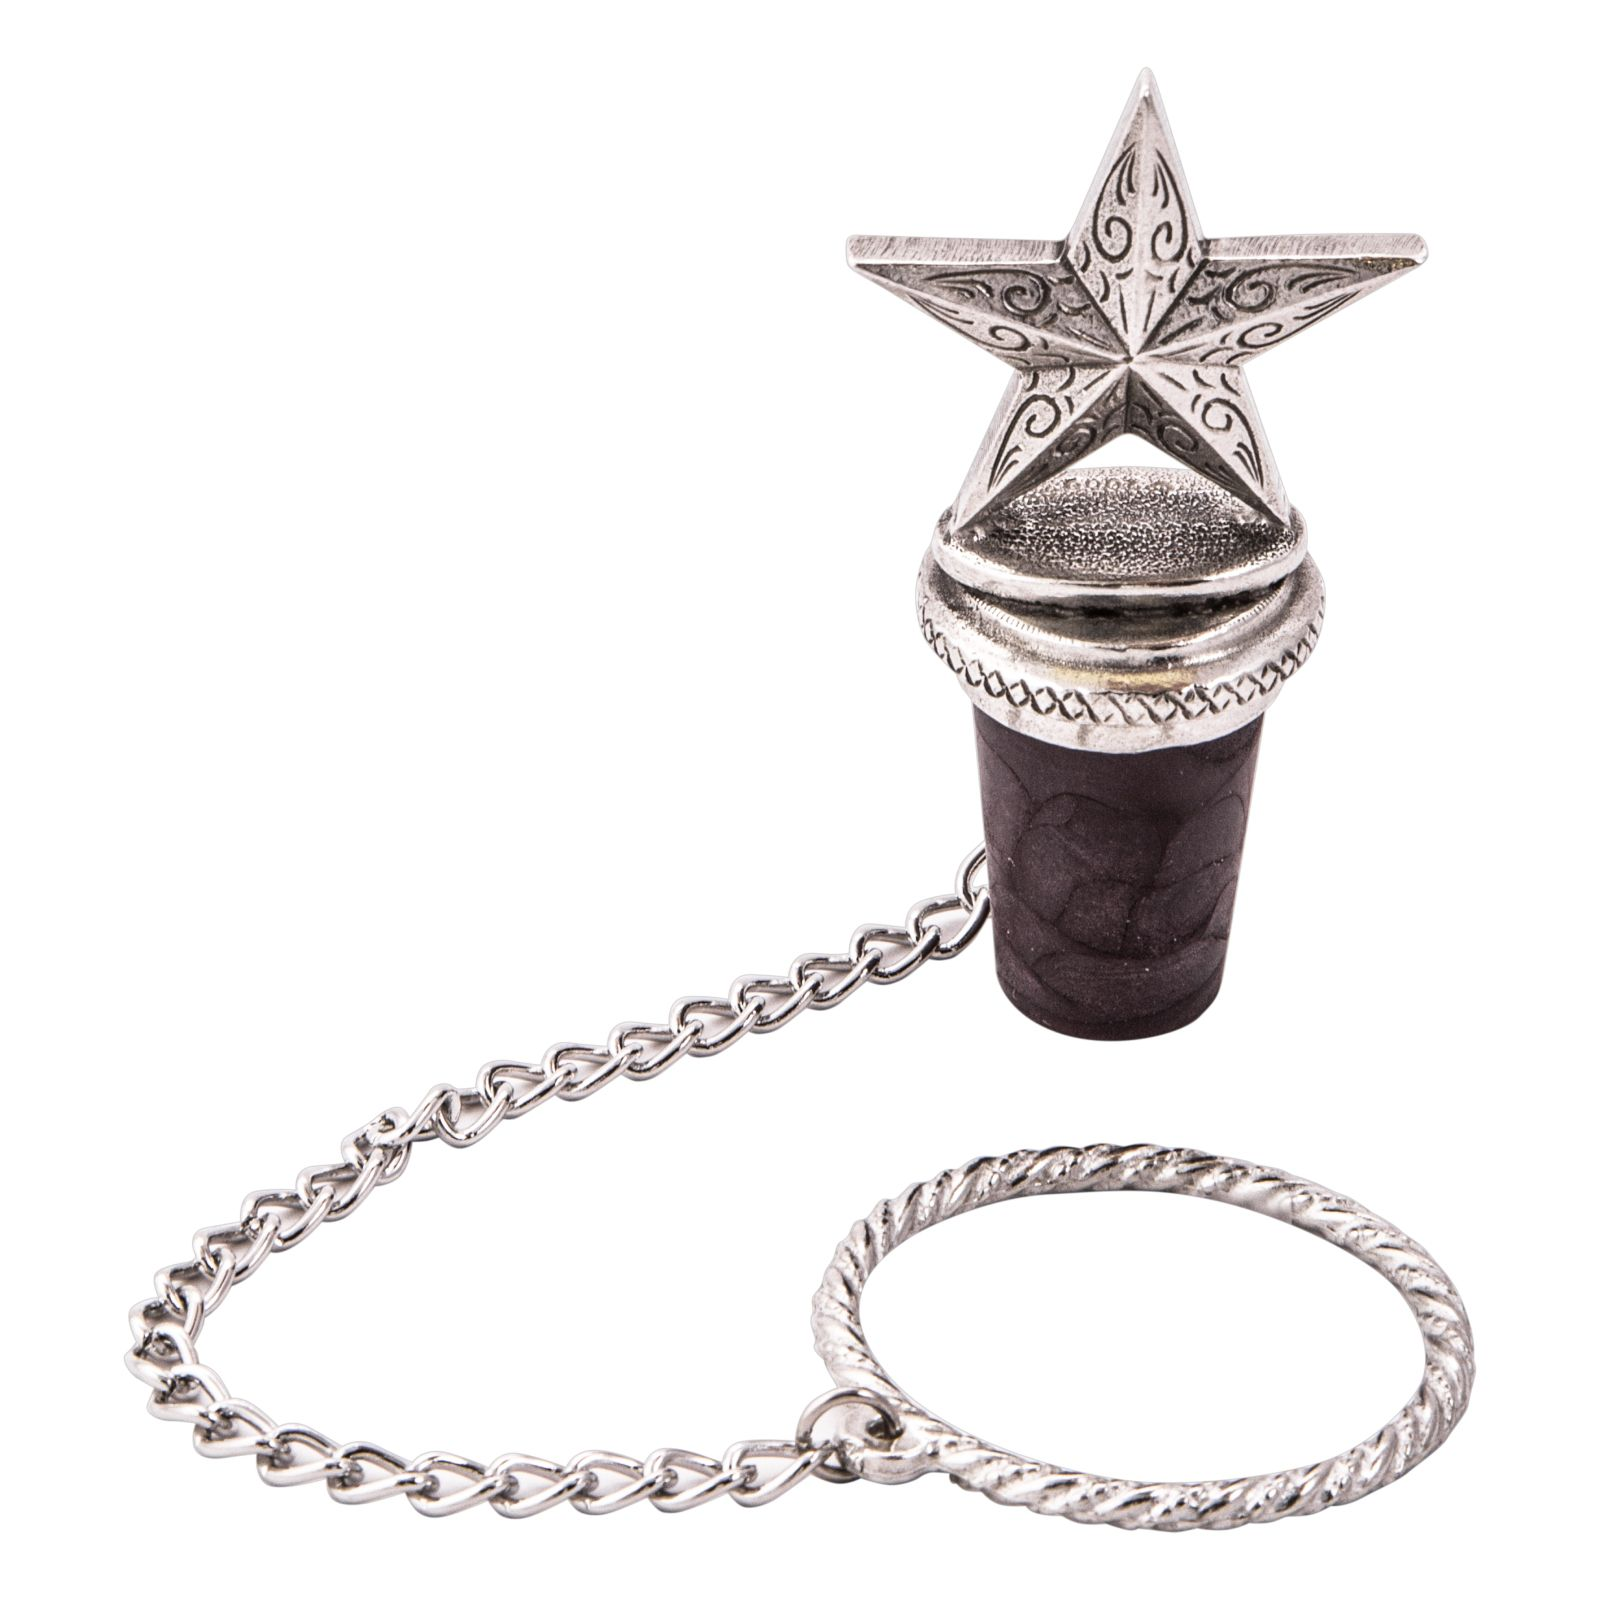 Lone Star Pewter Bottle Stopper